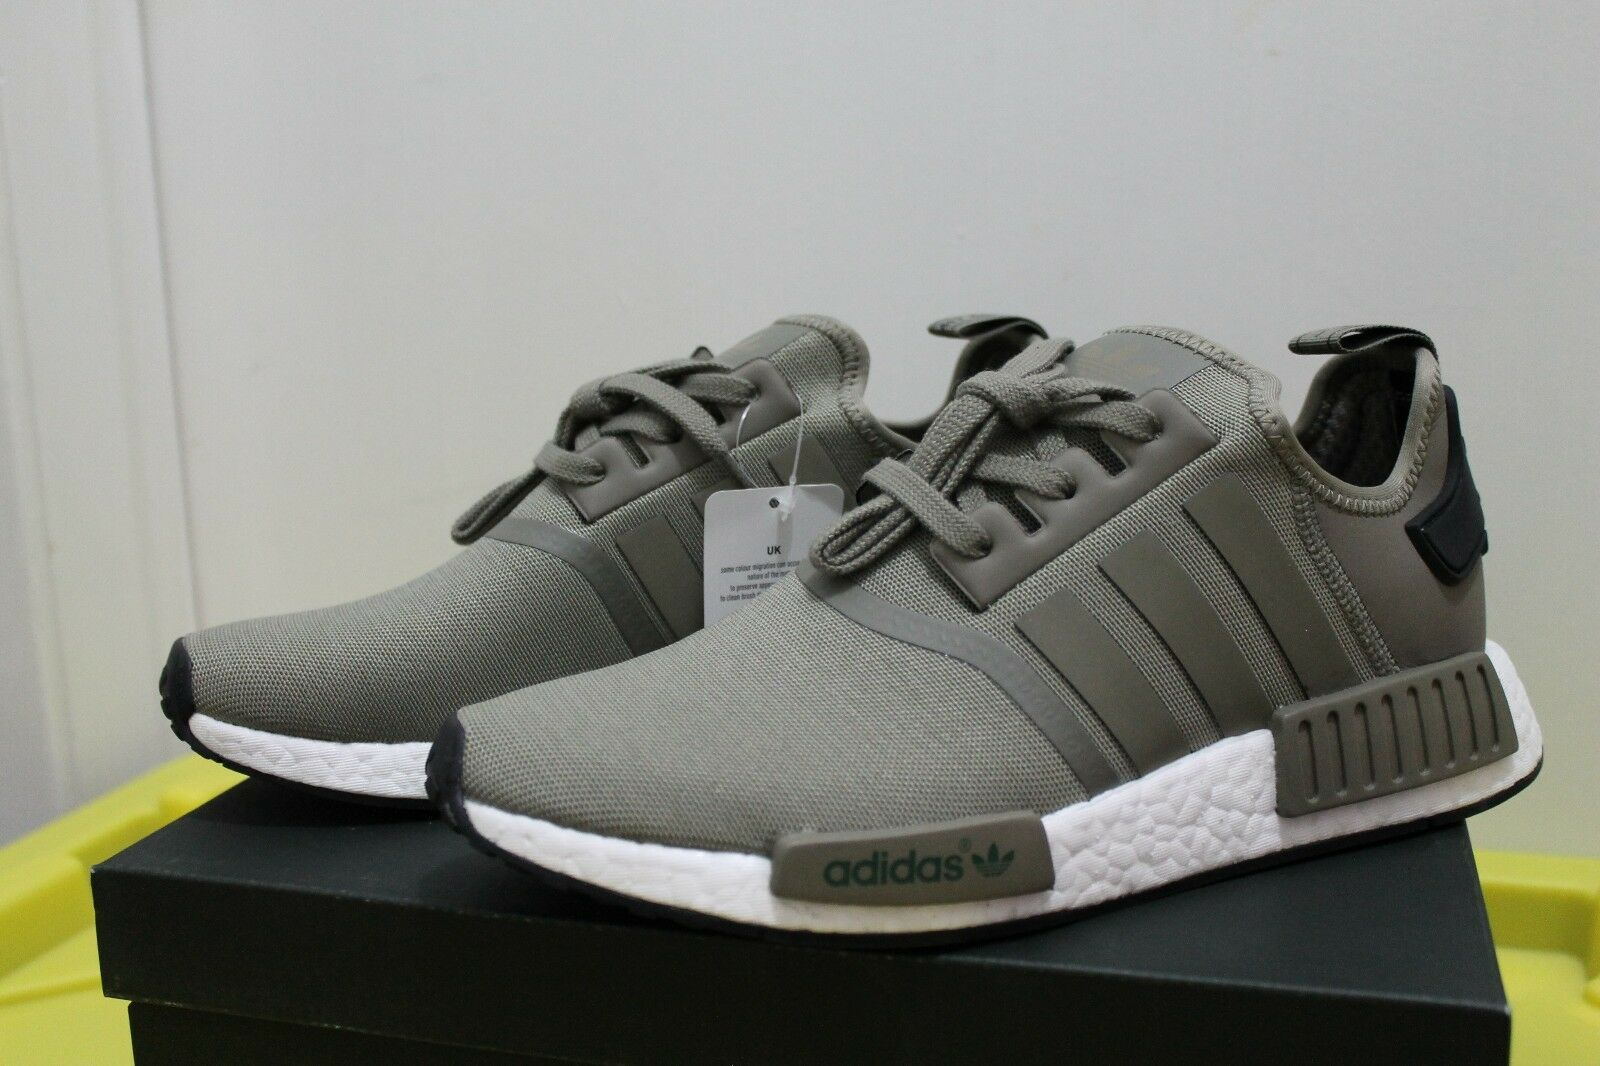 NEW Adidas NMD R1 Black Trace Cargo / Core Black R1 Mens Size SZ 9.5 BA7249 DS Deadstock 475d74